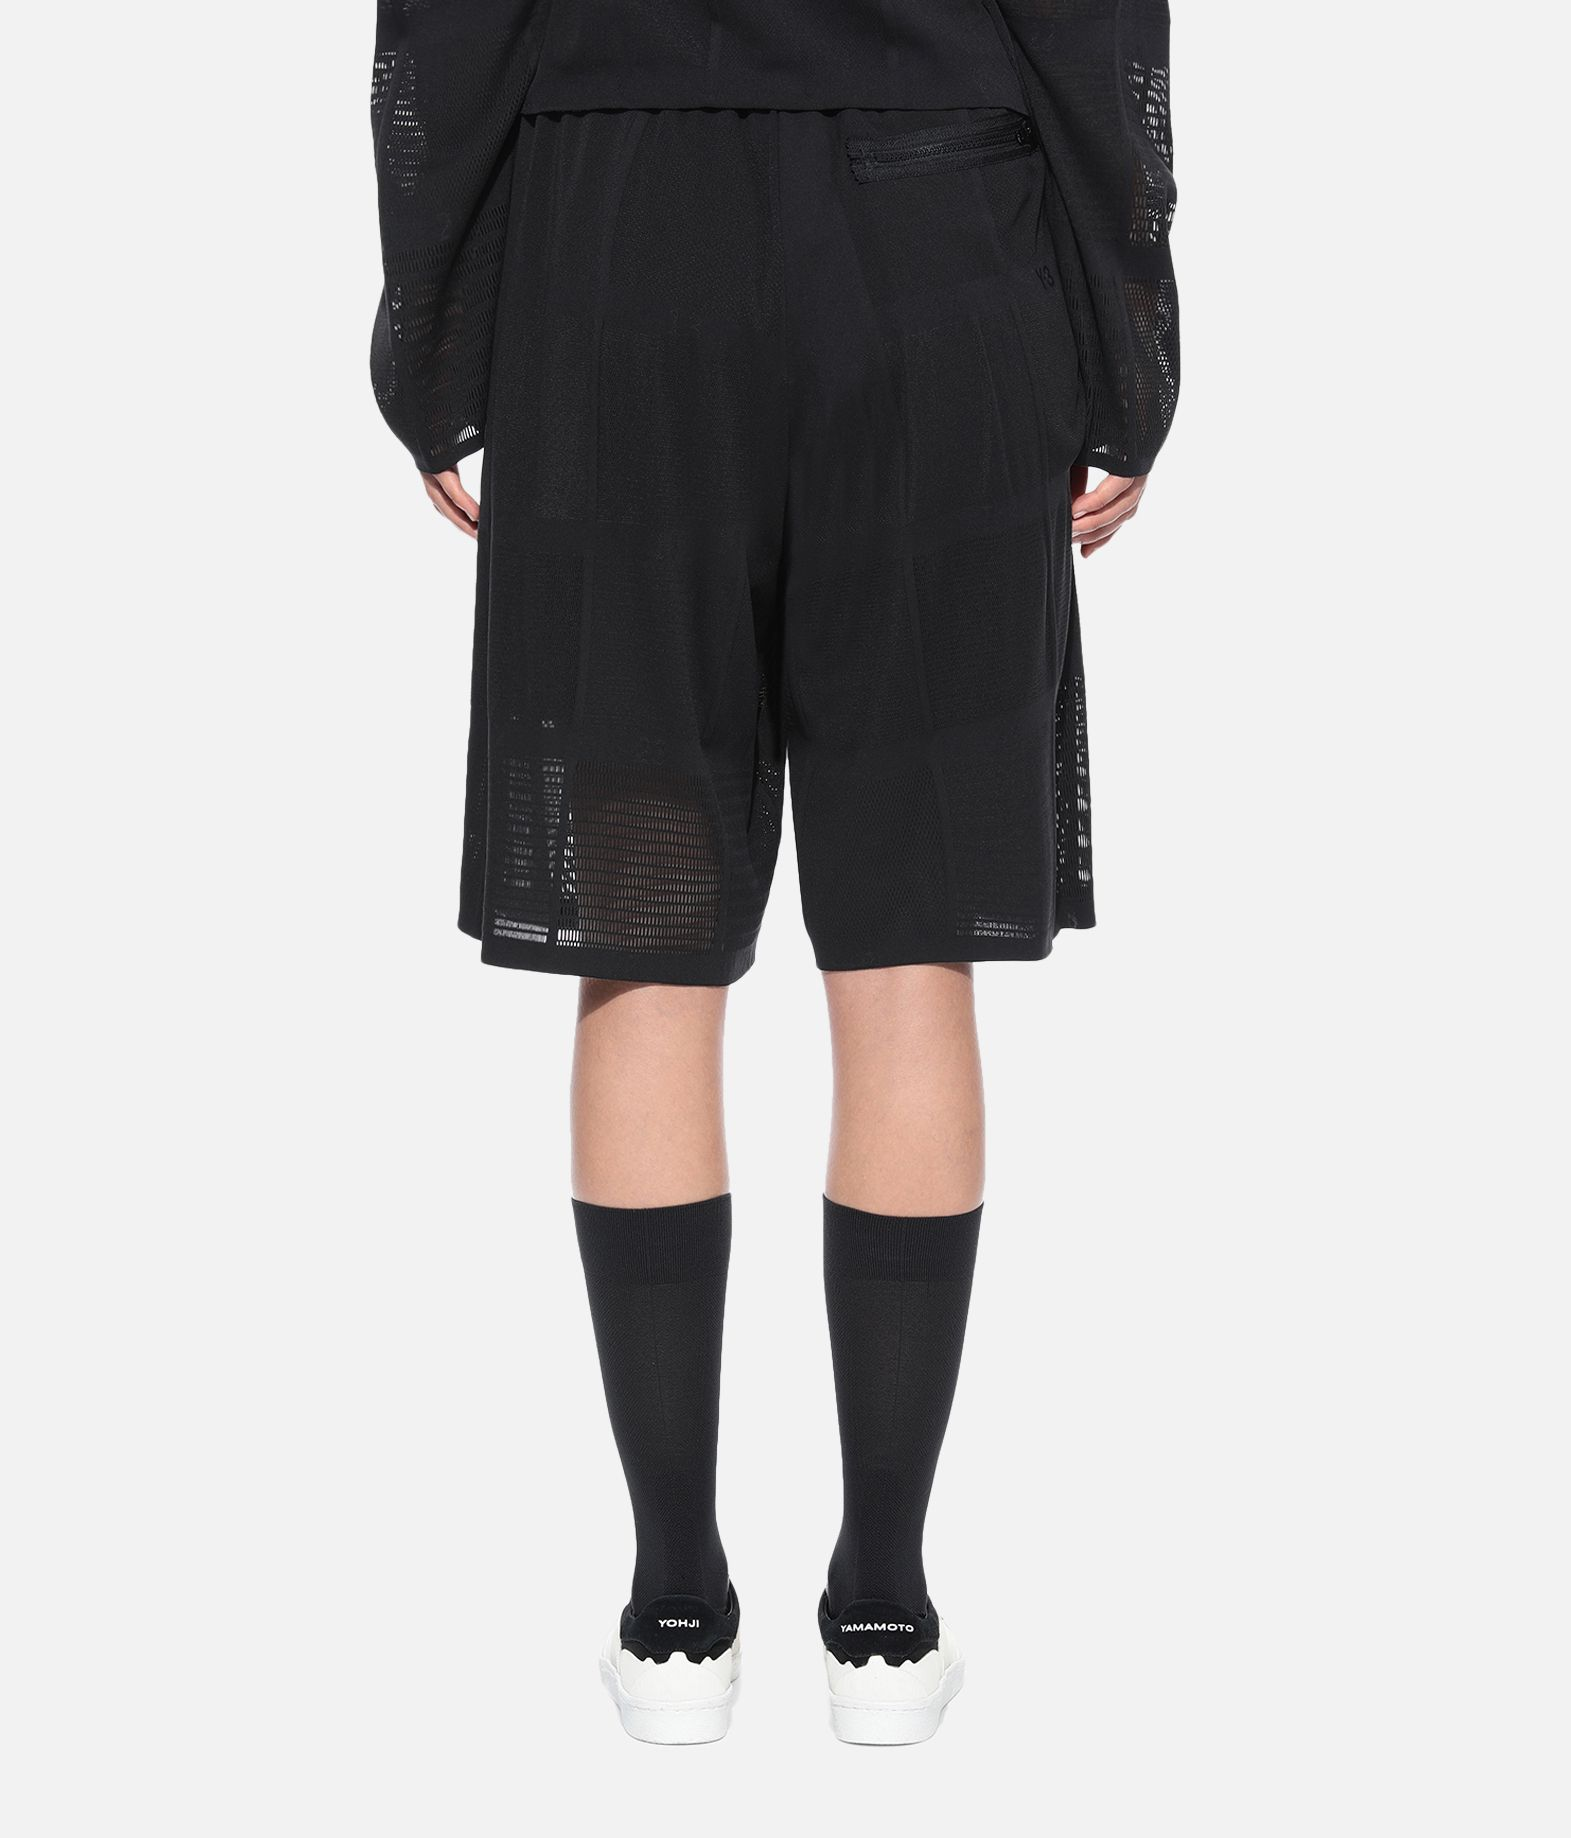 Y-3 Y-3 Patchwork Shorts Bermuda shorts Woman d